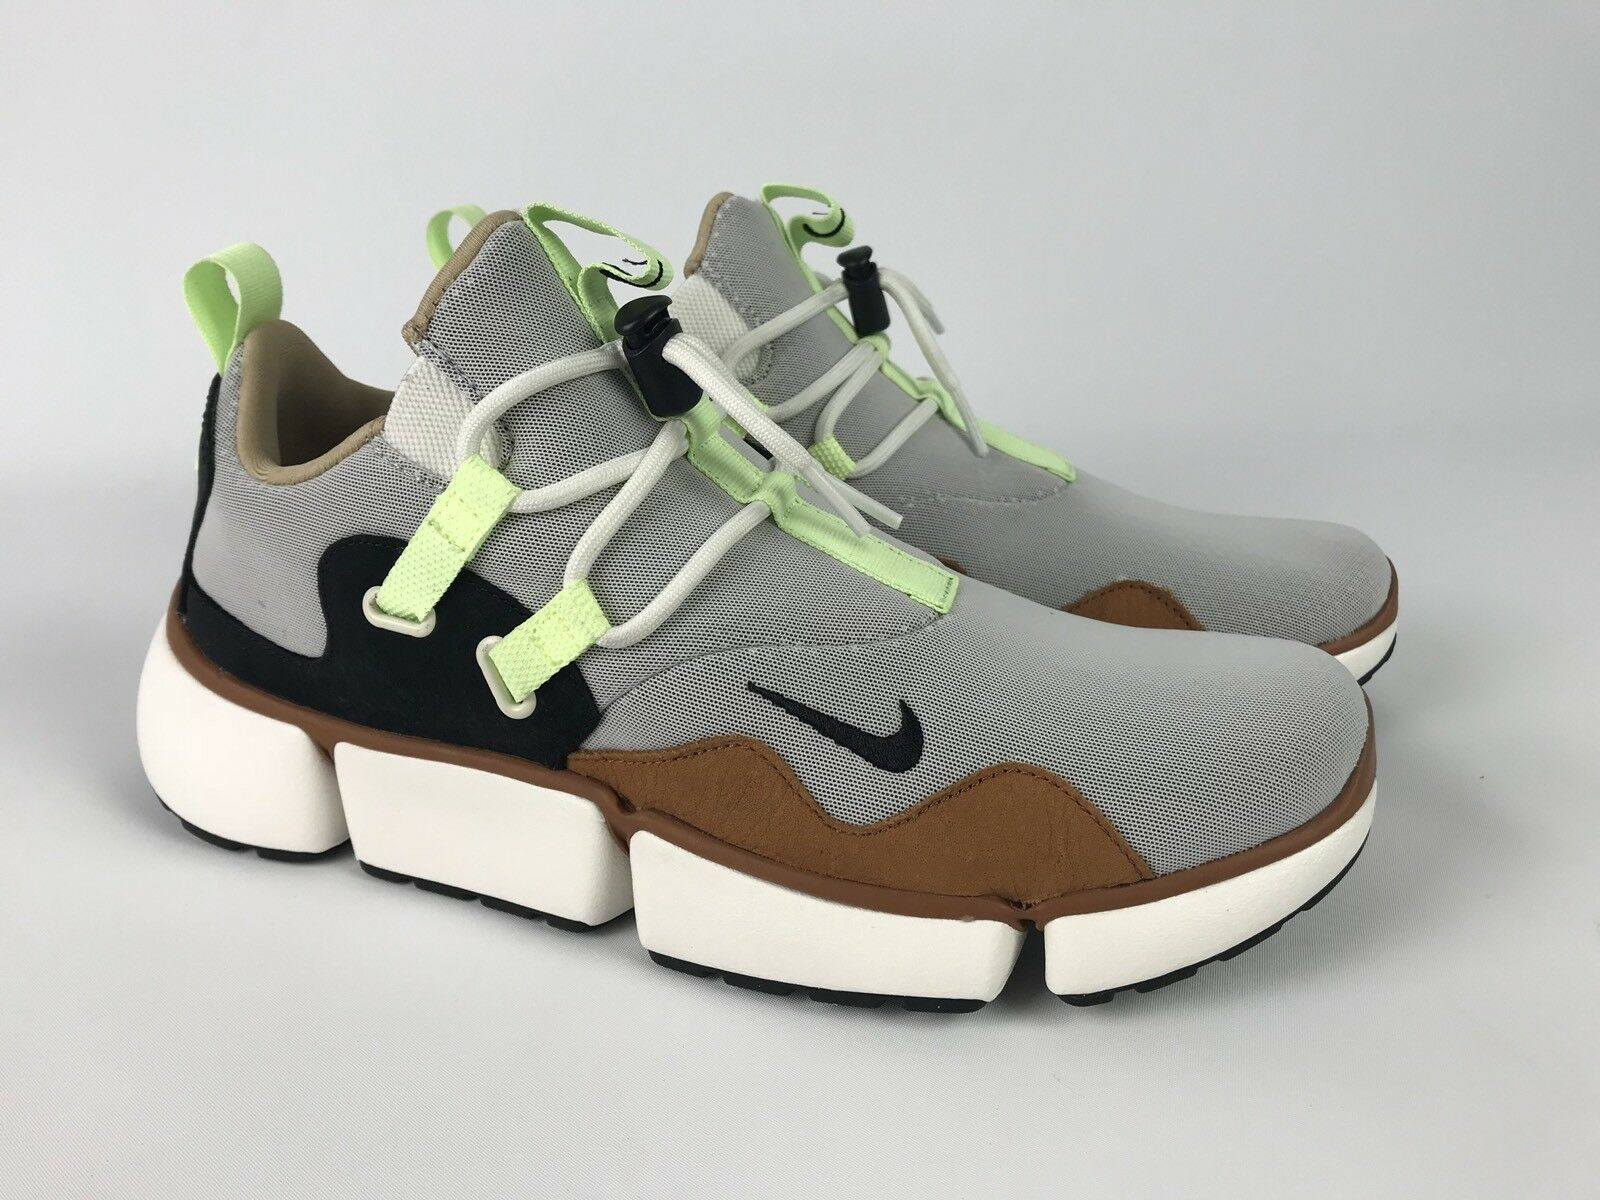 nike canif chaussures dm soldat tawny les chaussures canif de course 910571-201 taille 10 09c239